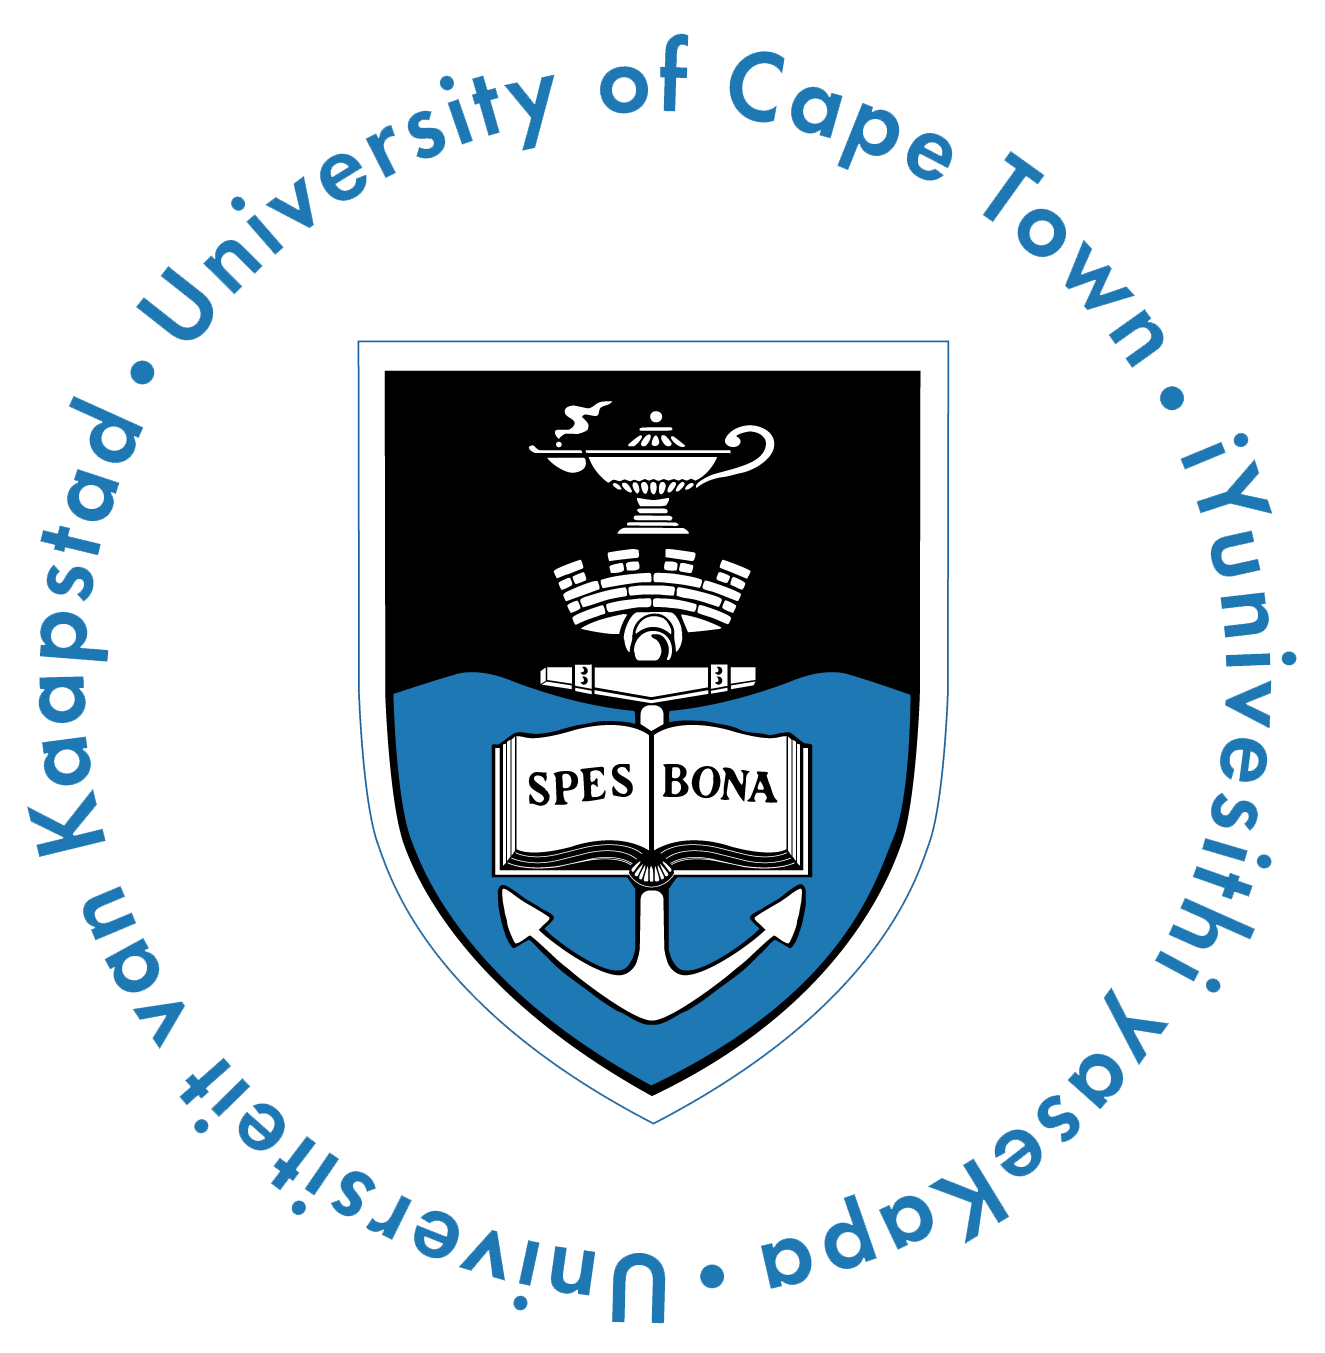 University of Cape Town (UCT) logo